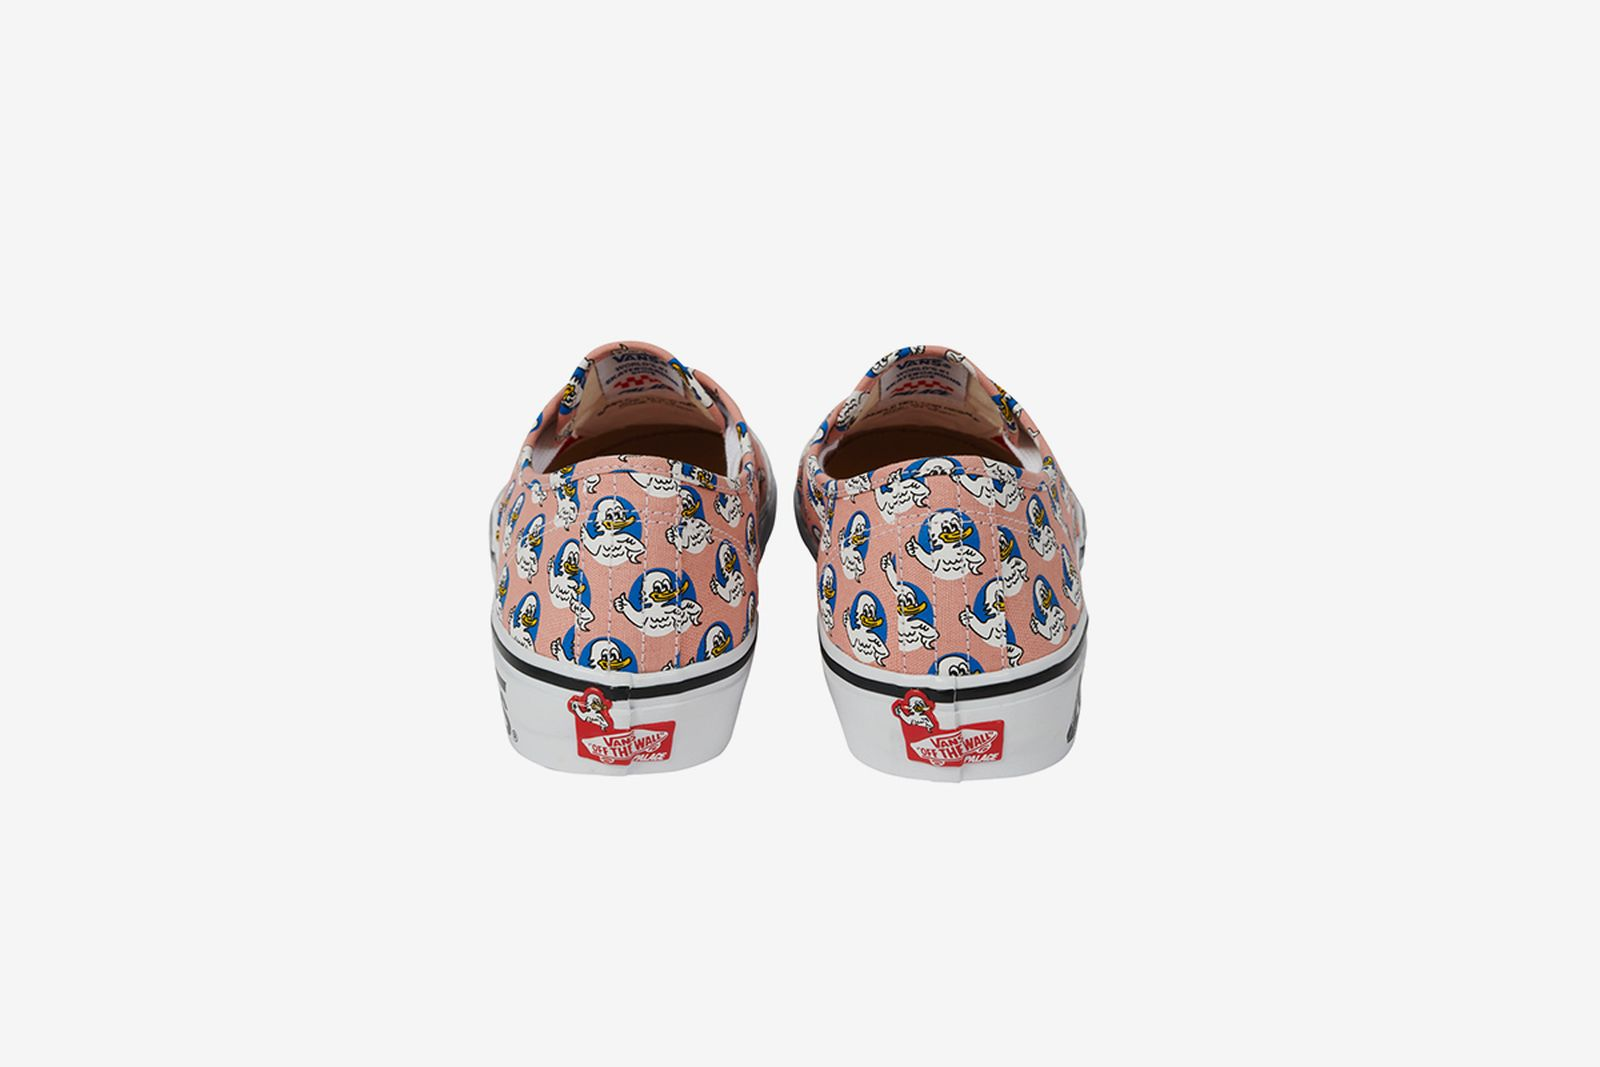 palace-vans-skate-authentic-release-date-price-1-15